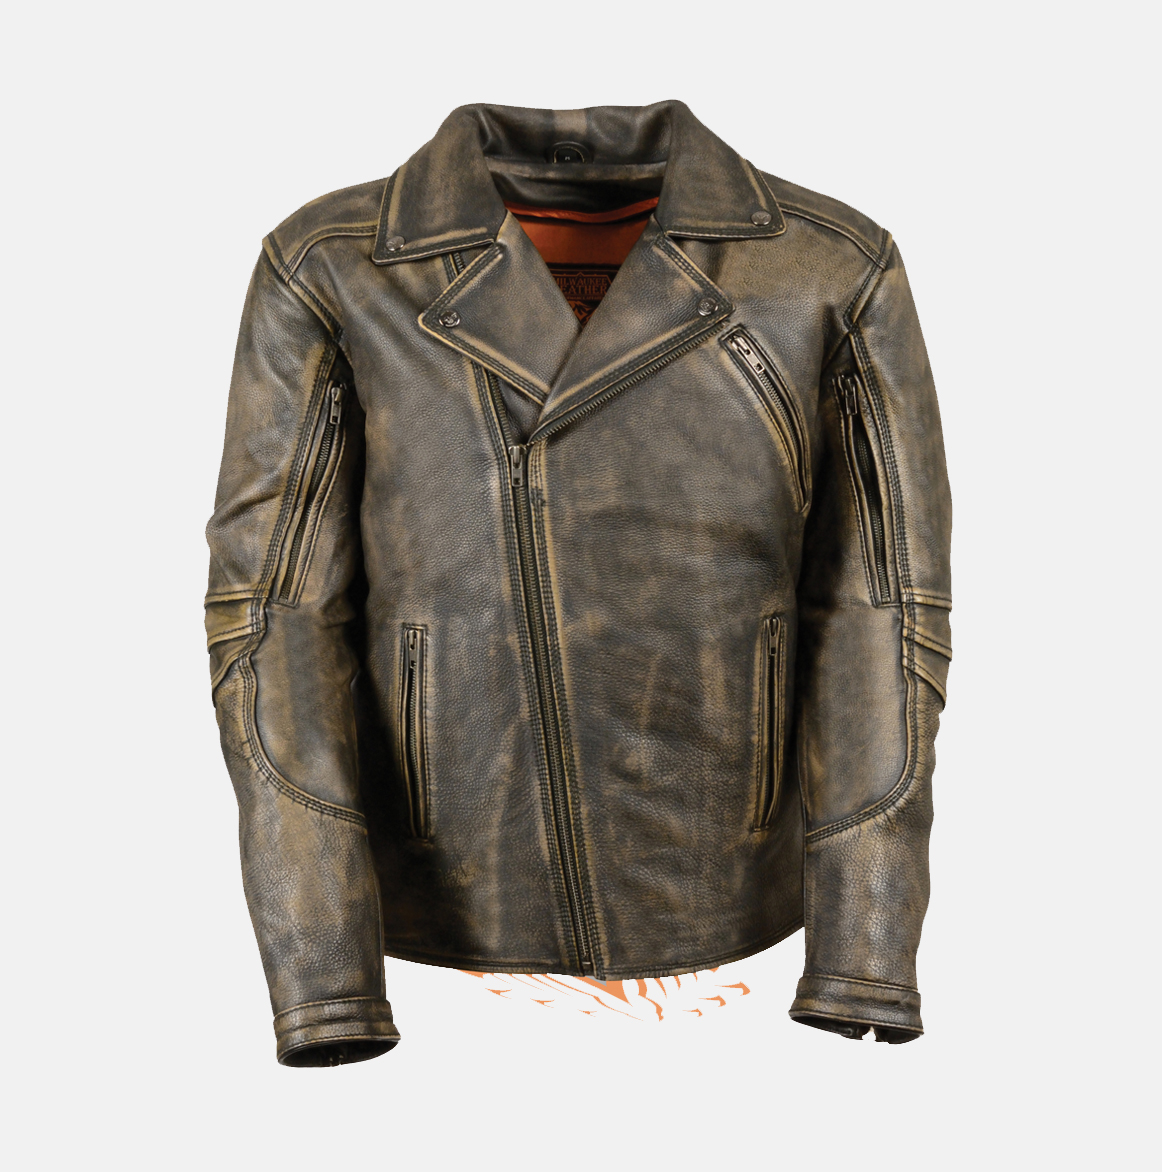 MEN'S BROWN DISTRESSED LEATHER POLICE JACKET - Bikers Gear Online USA